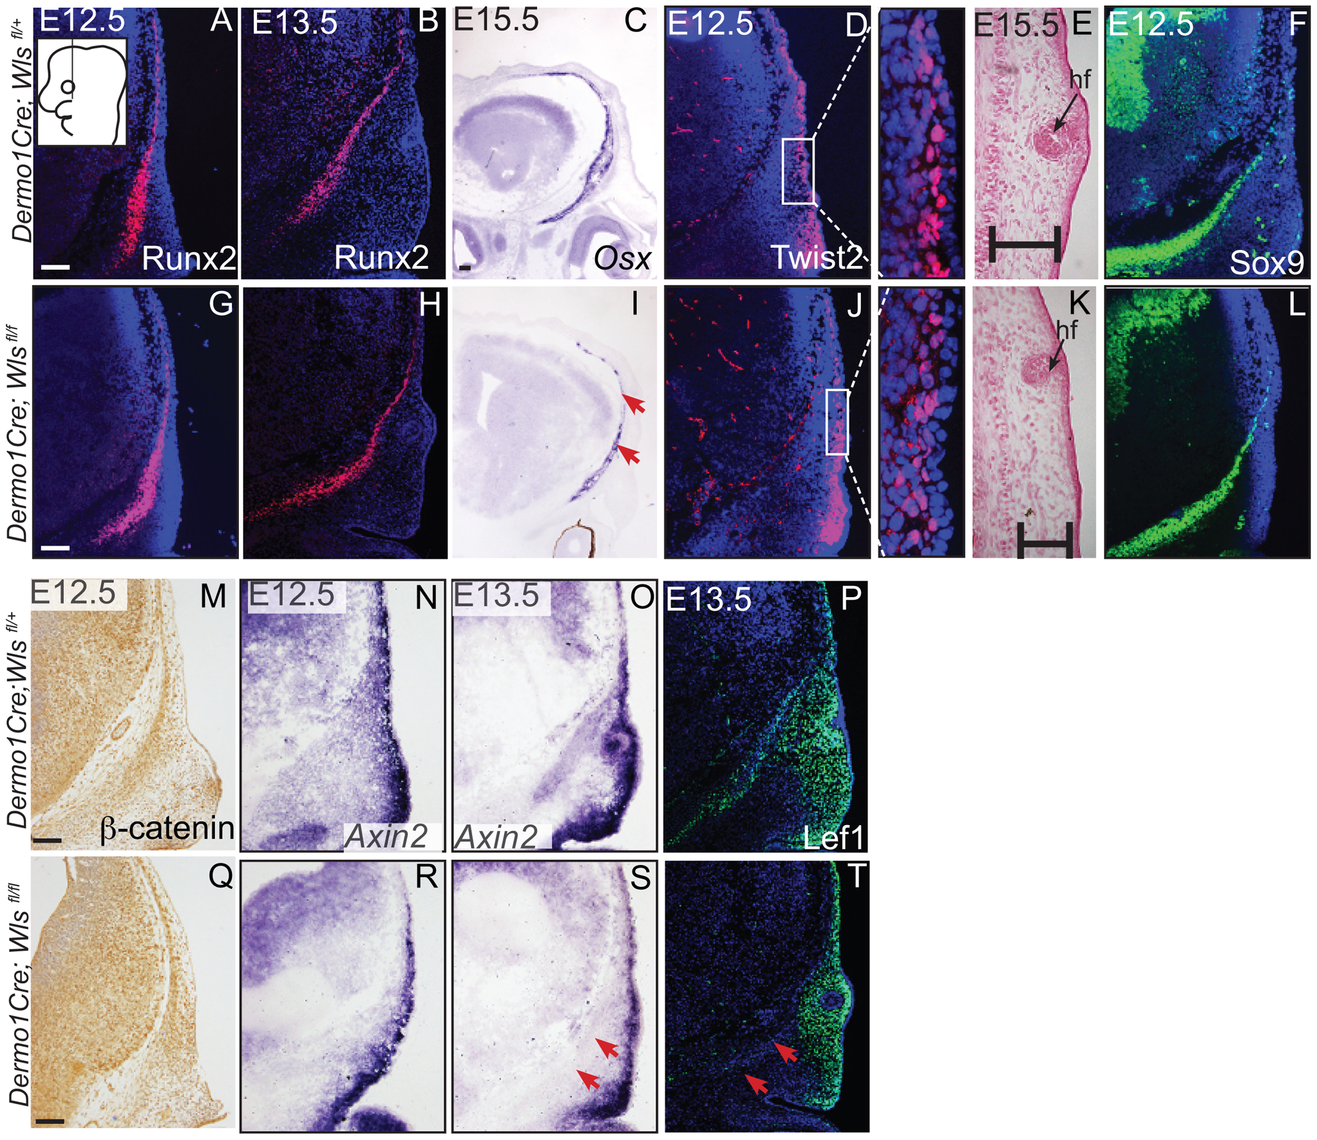 Mesenchyme deletion of <i>Wntless</i> leads to diminished differentiation and Wnt responsiveness in the bone lineage.